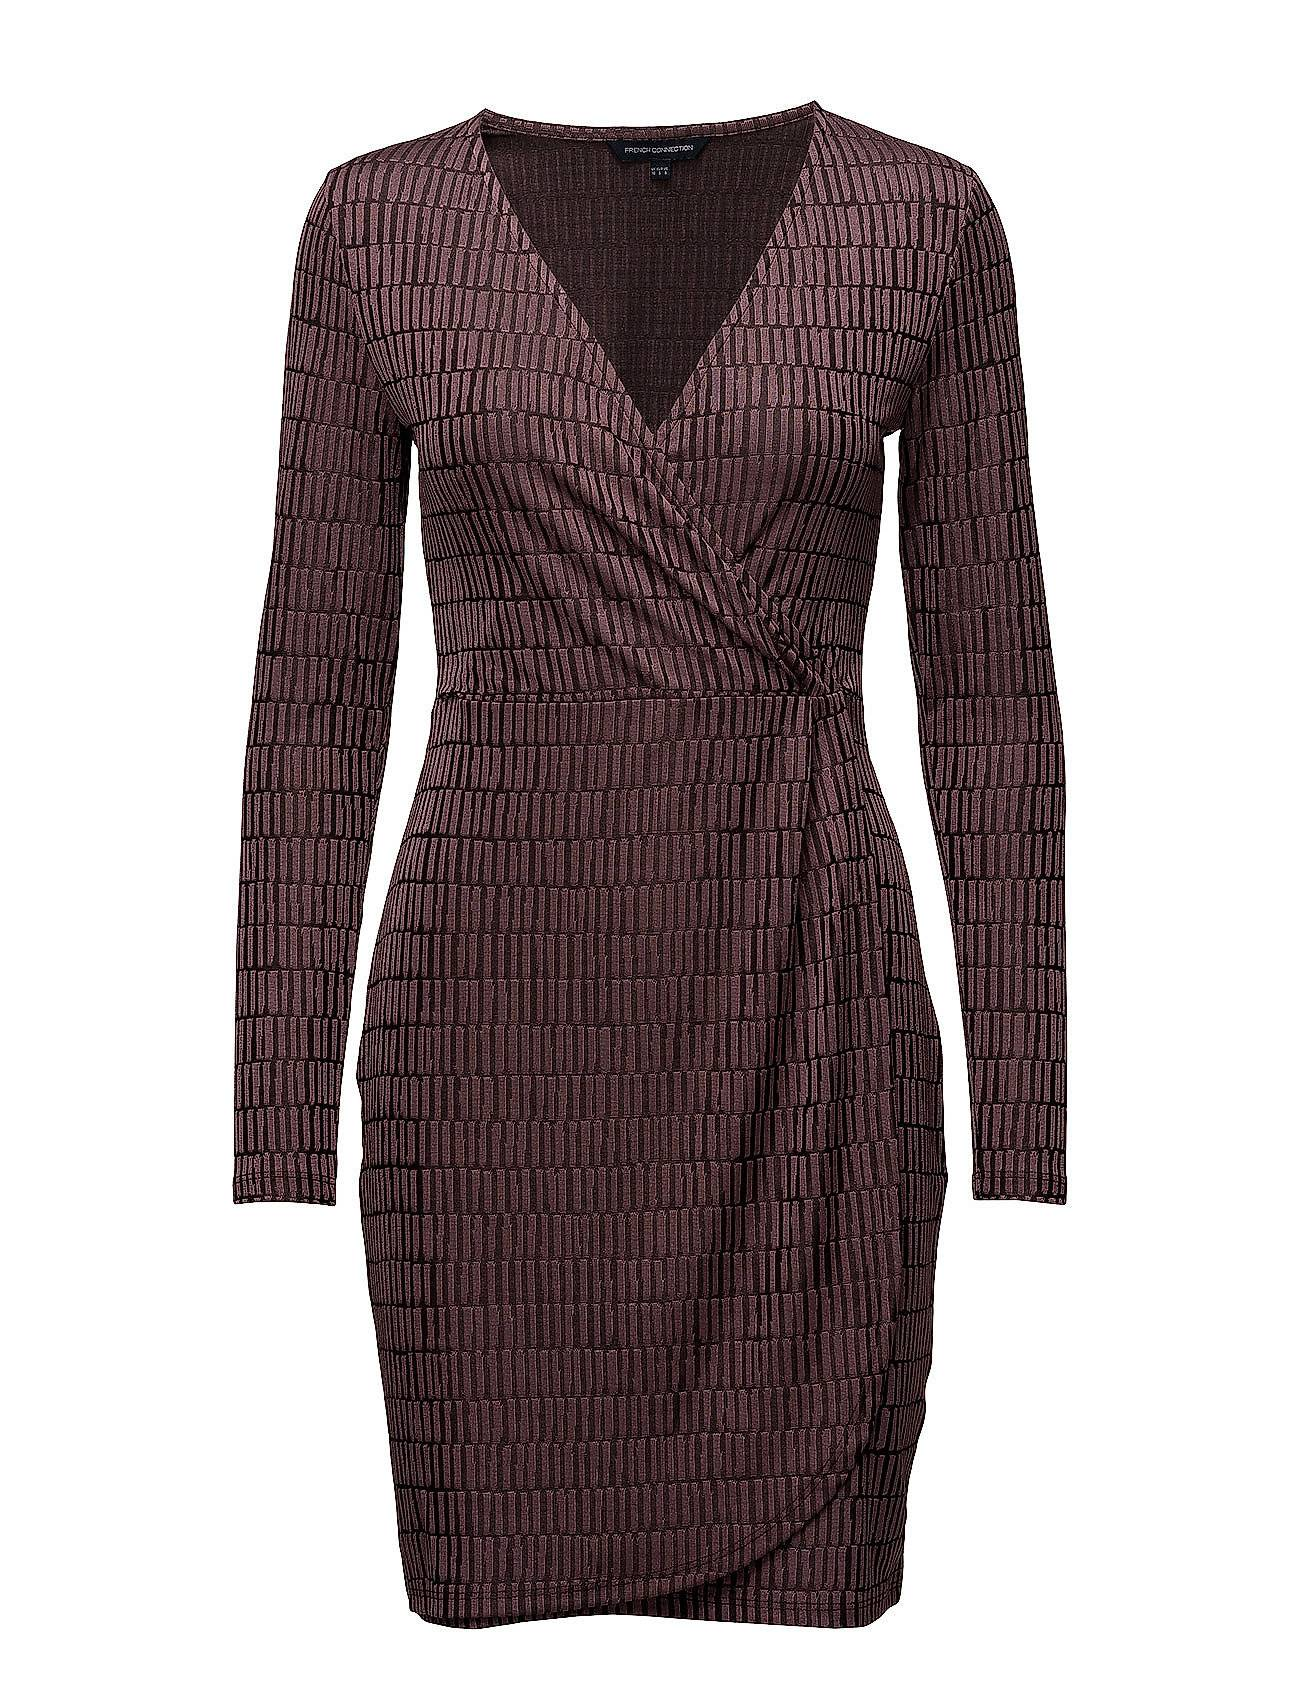 French Connection Linear Jazquard Vneck Dress